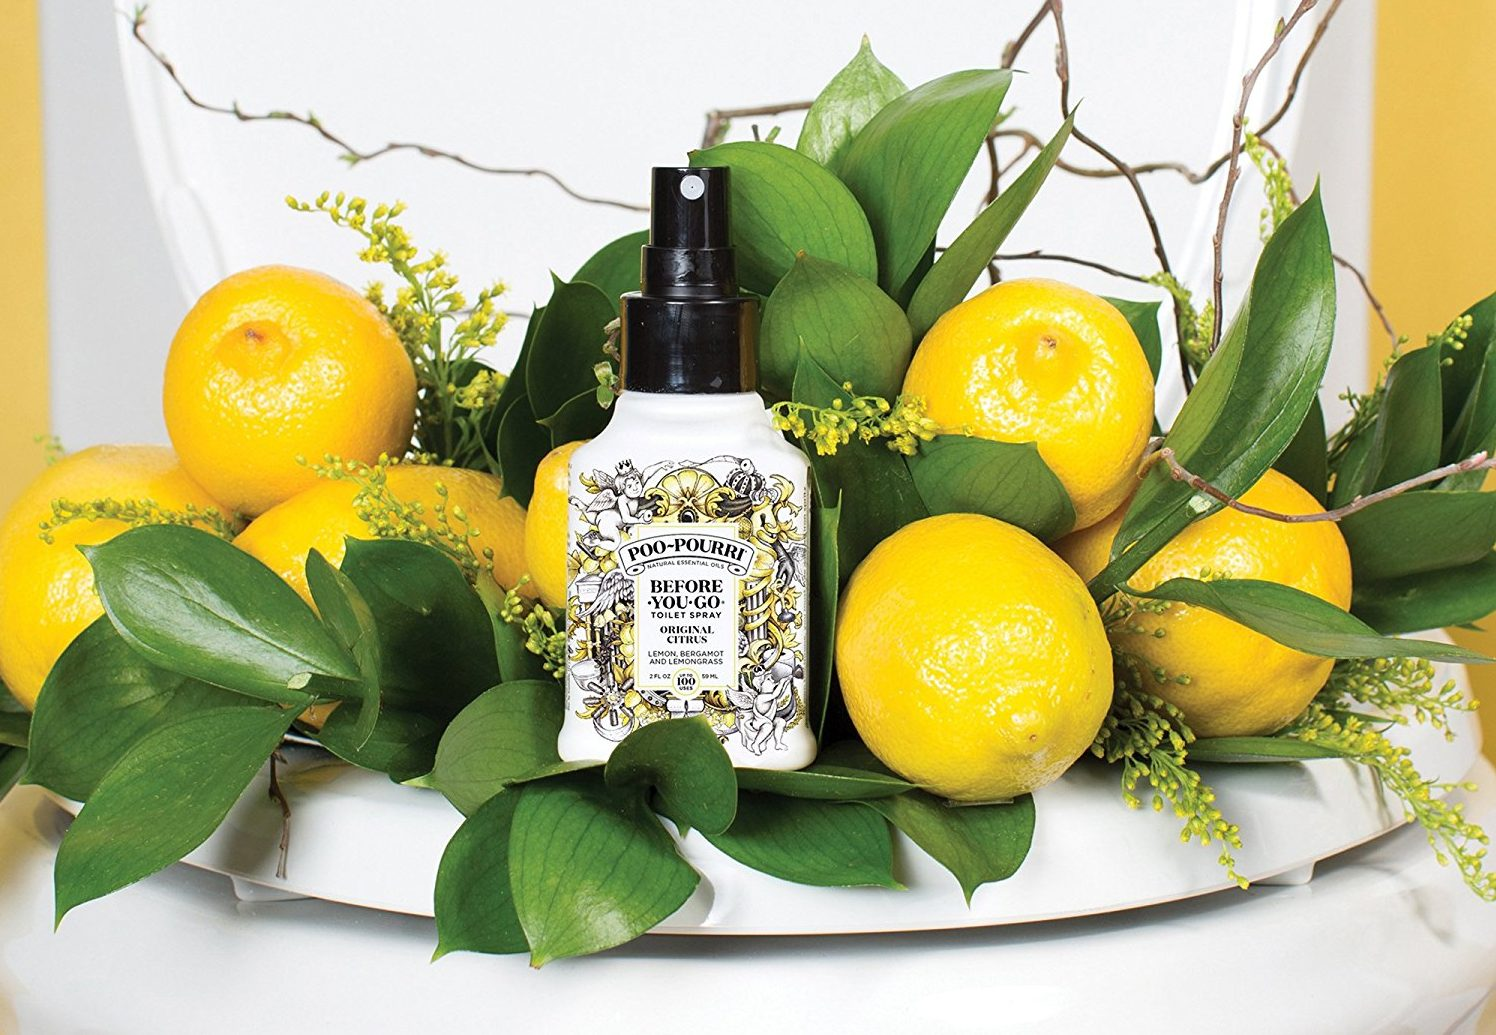 favorite poop related products - poo-pouri